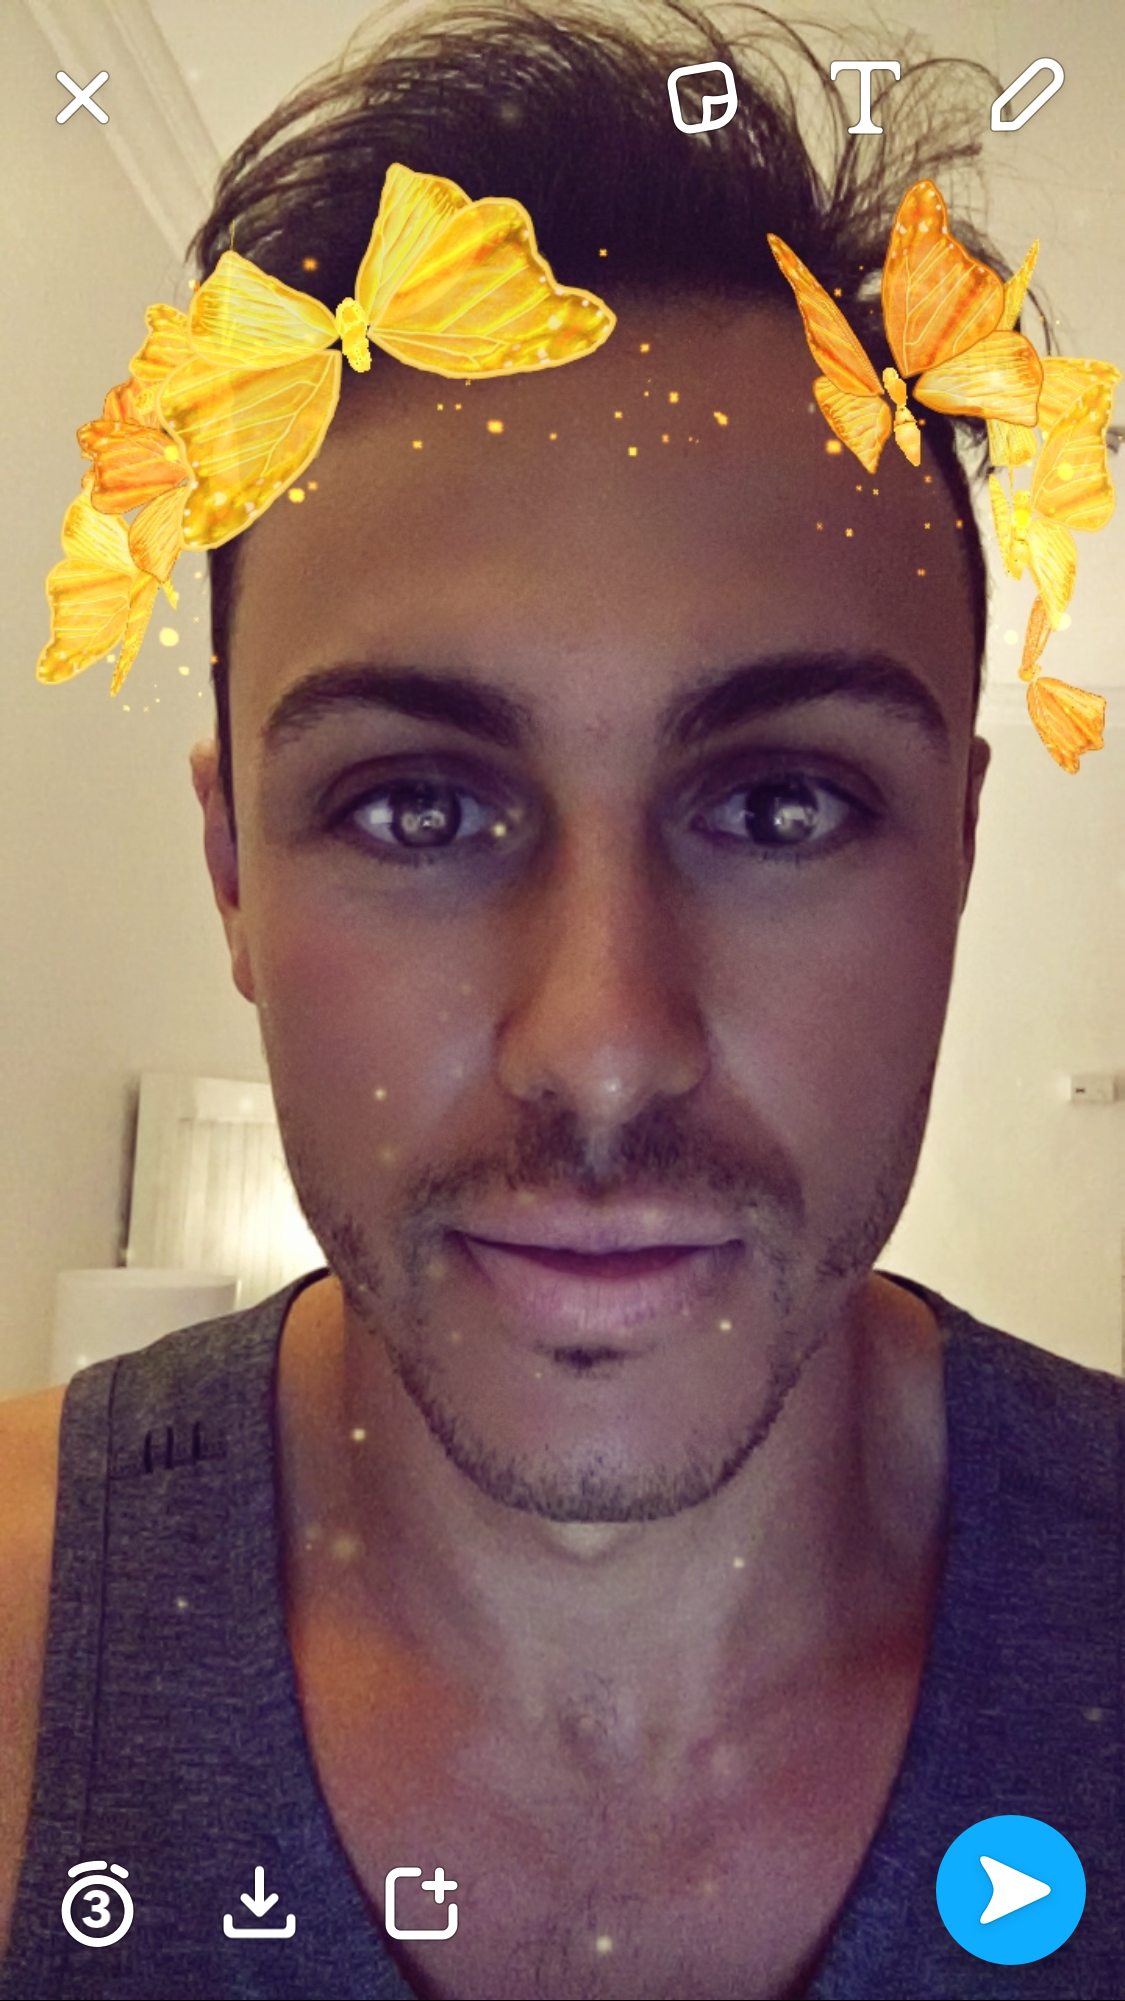 Step 1: Open Snapchat and take a photo / video selfie with your filter of choice (my favourite at the moment is this filter)